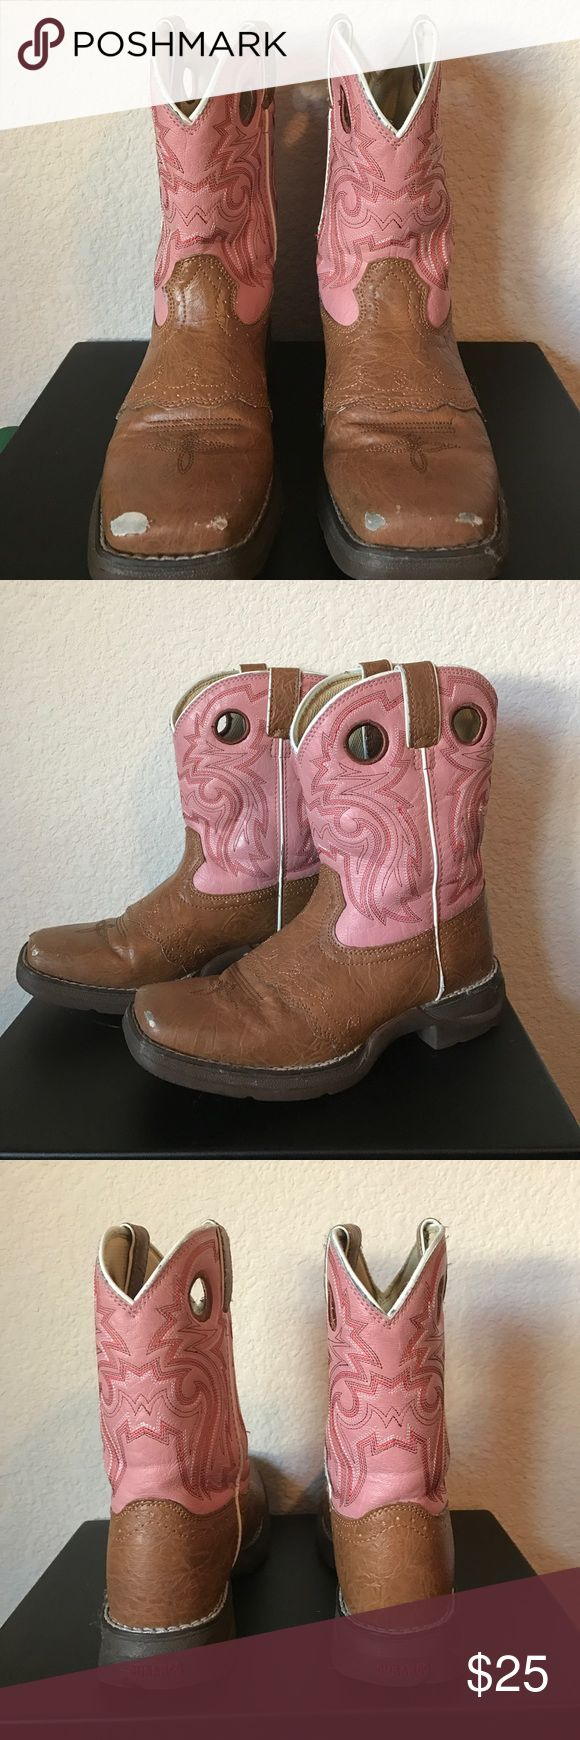 """Kids western boots Kid's 8"""" western boots. Tan & pink. Scuffs on the toes of both boots (please see photos)), but still in great condition. Size 3M. Durango Shoes Boots"""